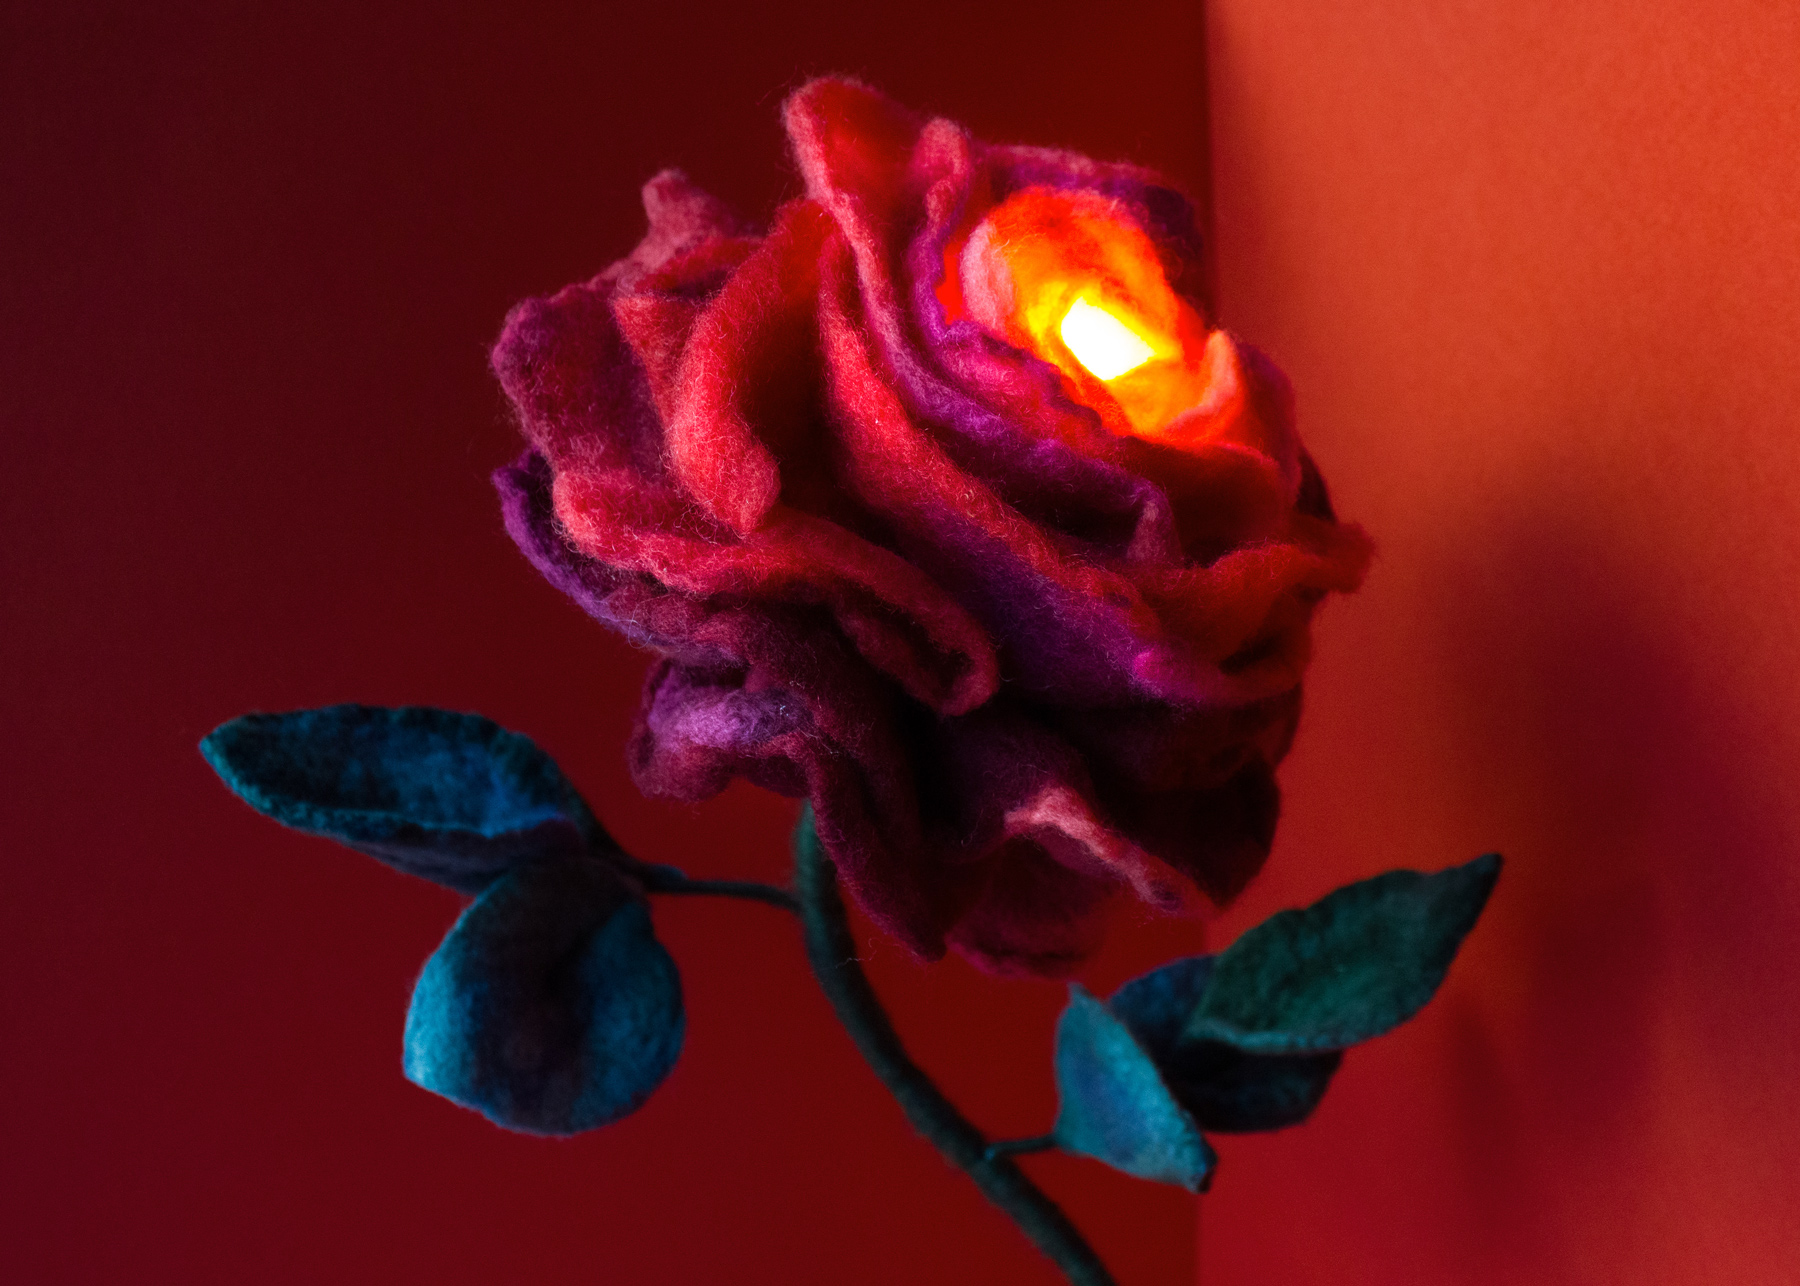 felt-flower-lamp_Cherry-Rose_Adelya-Tumasyeva_6.jpg